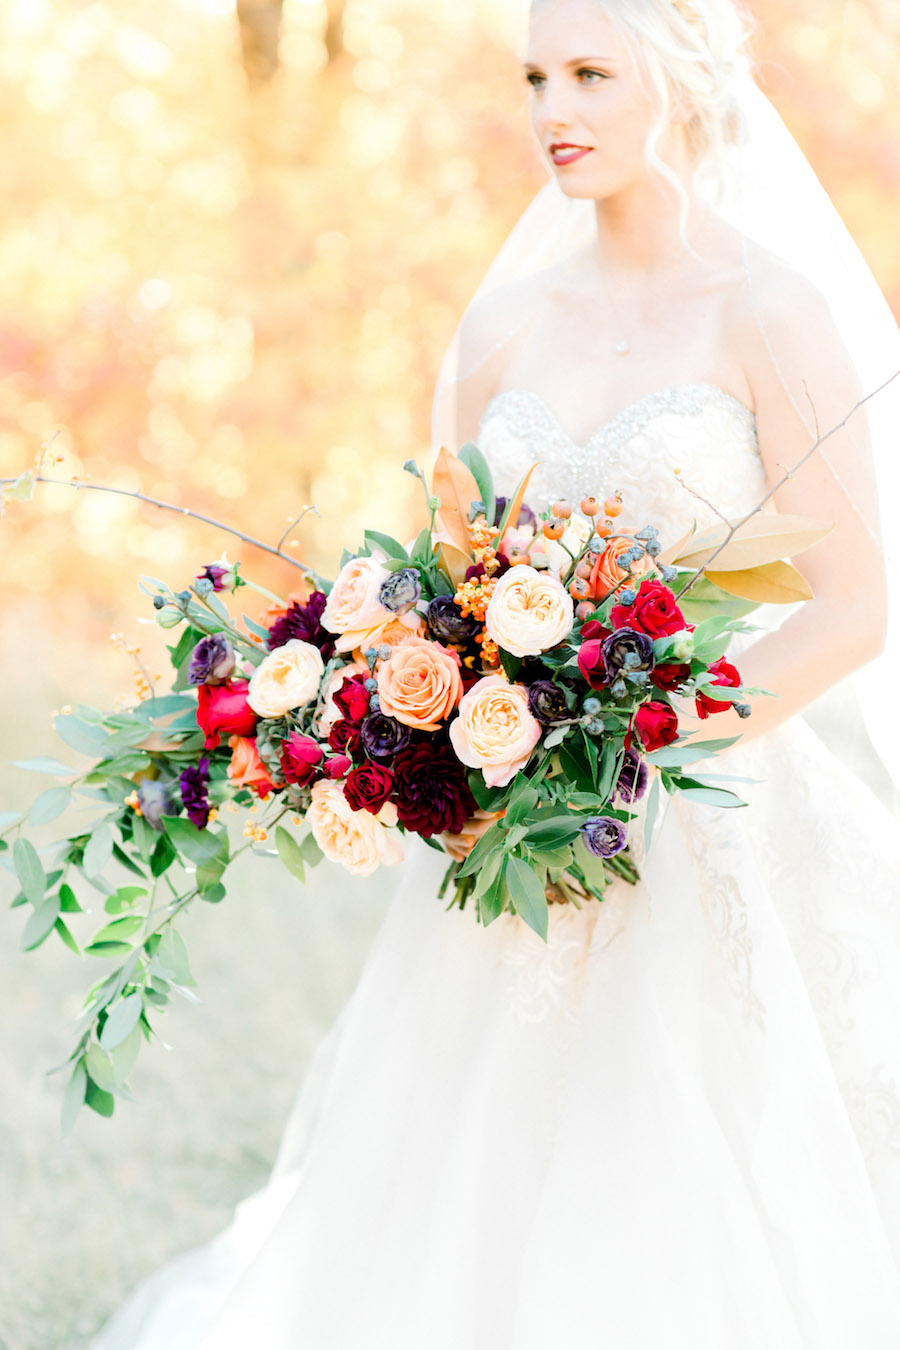 Vibrantly Rich Forest Editorial bride with bouquet